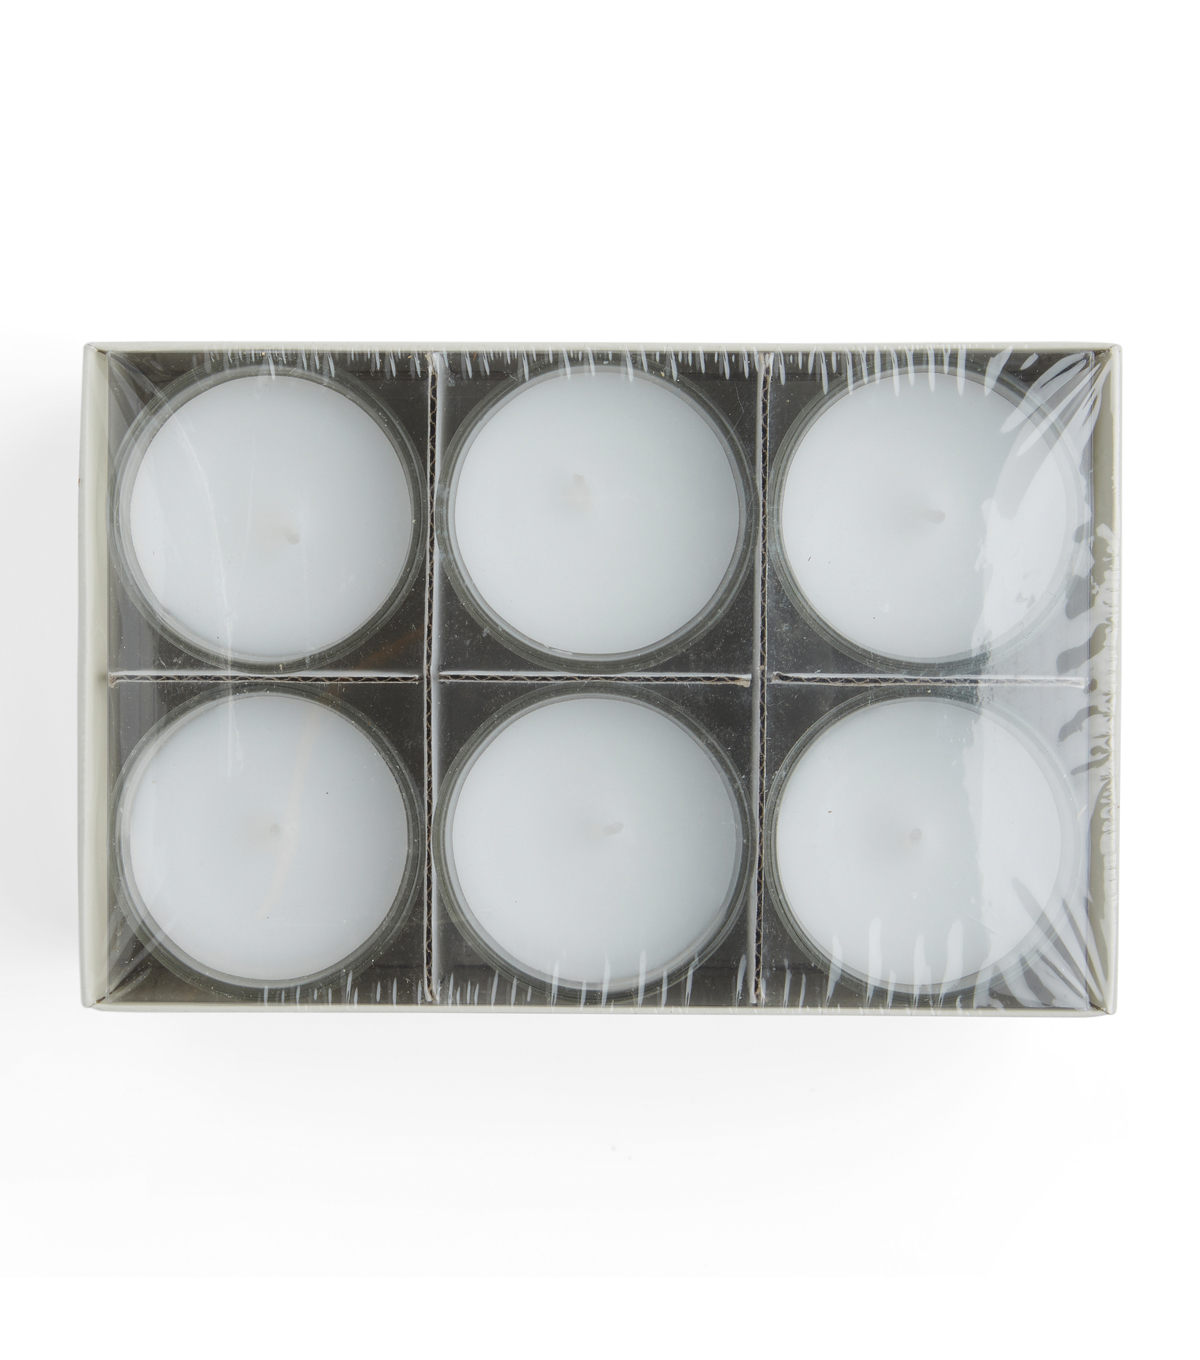 Hudson 43 Candle & Light Collection 6pk Unscented Glass Accent Candles-White